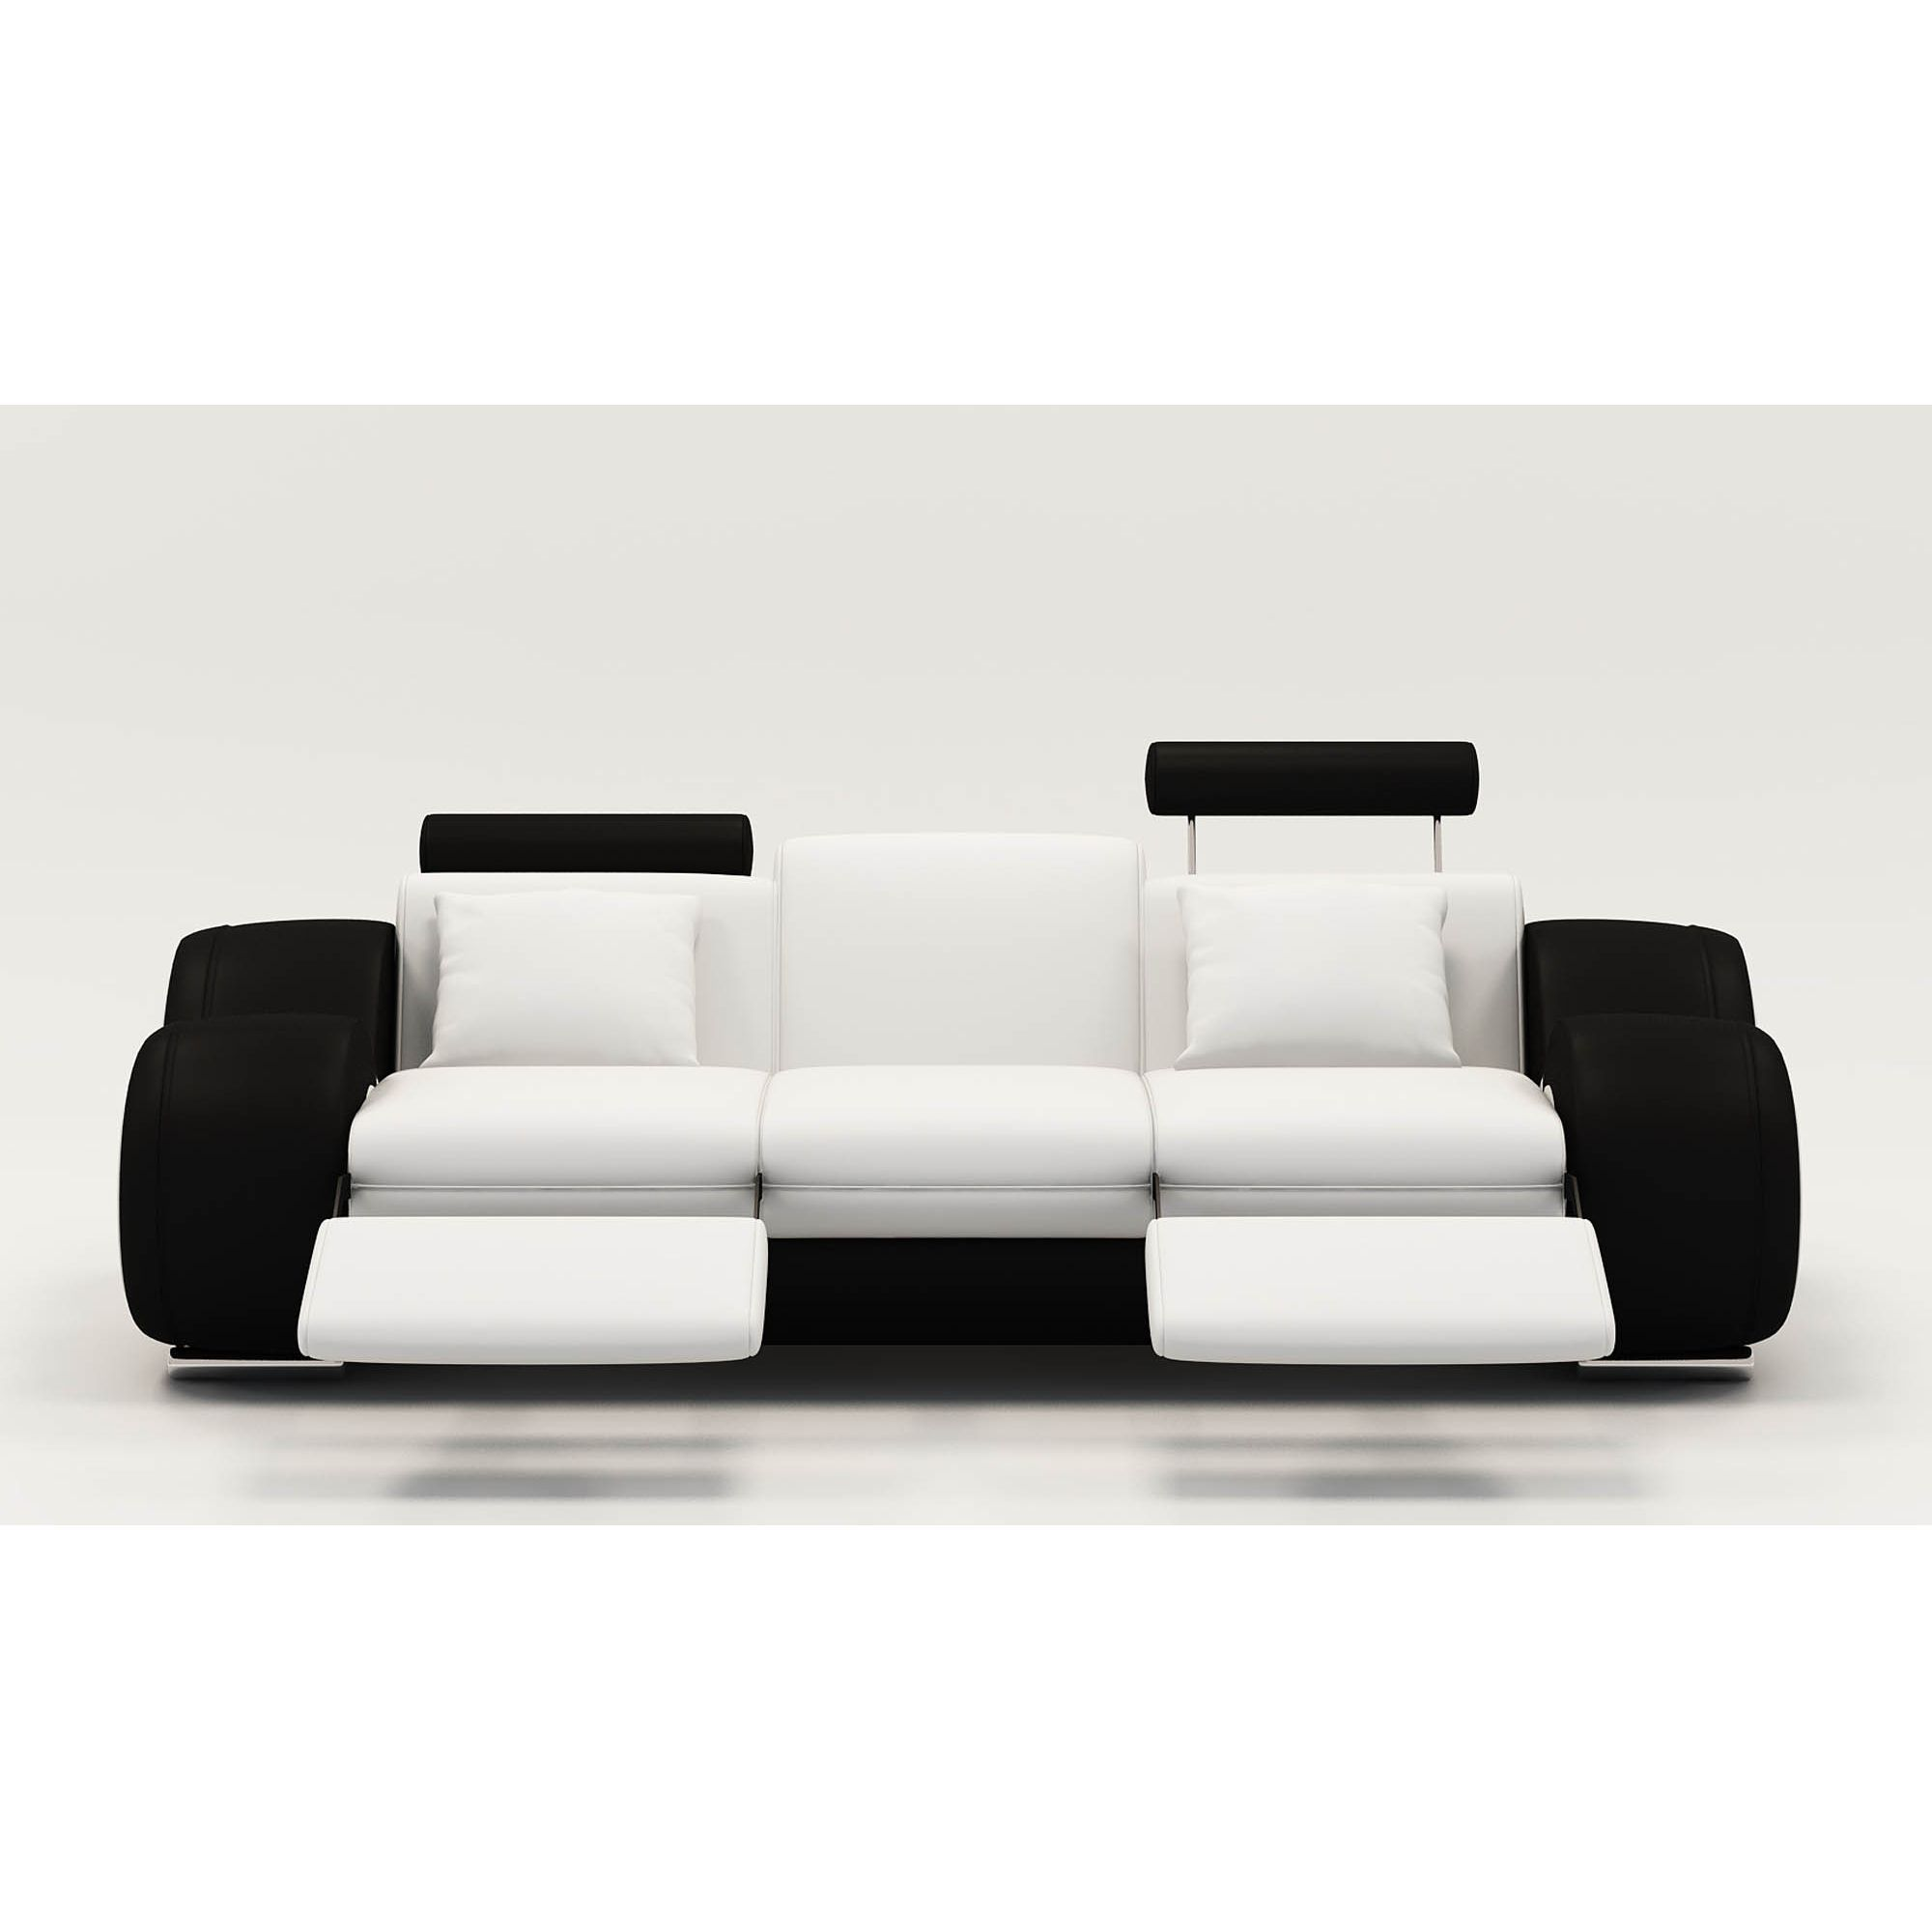 Deco in paris ensemble canape relax design 3 2 1 places - Canape design places ...